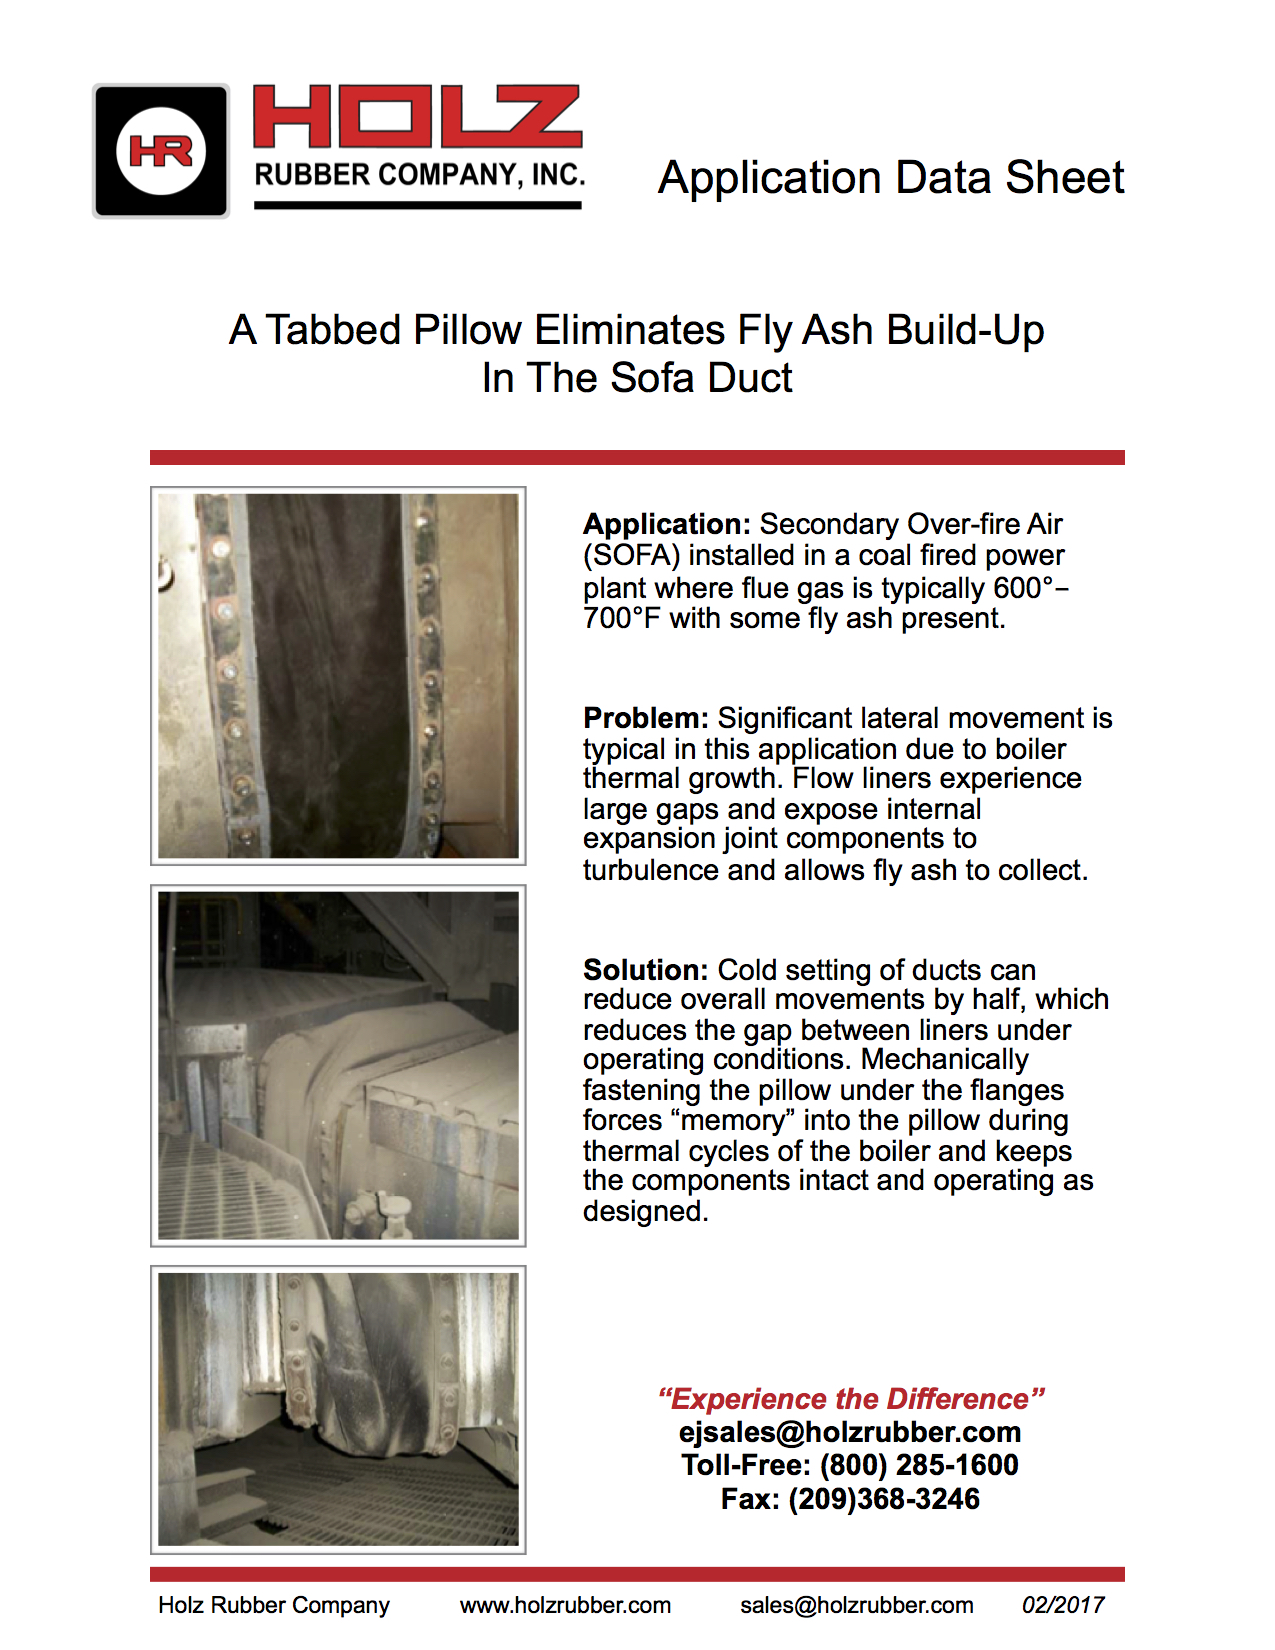 A Tabbed Pillow Eliminates Fly Ash Build-Up In The Sofa Duct